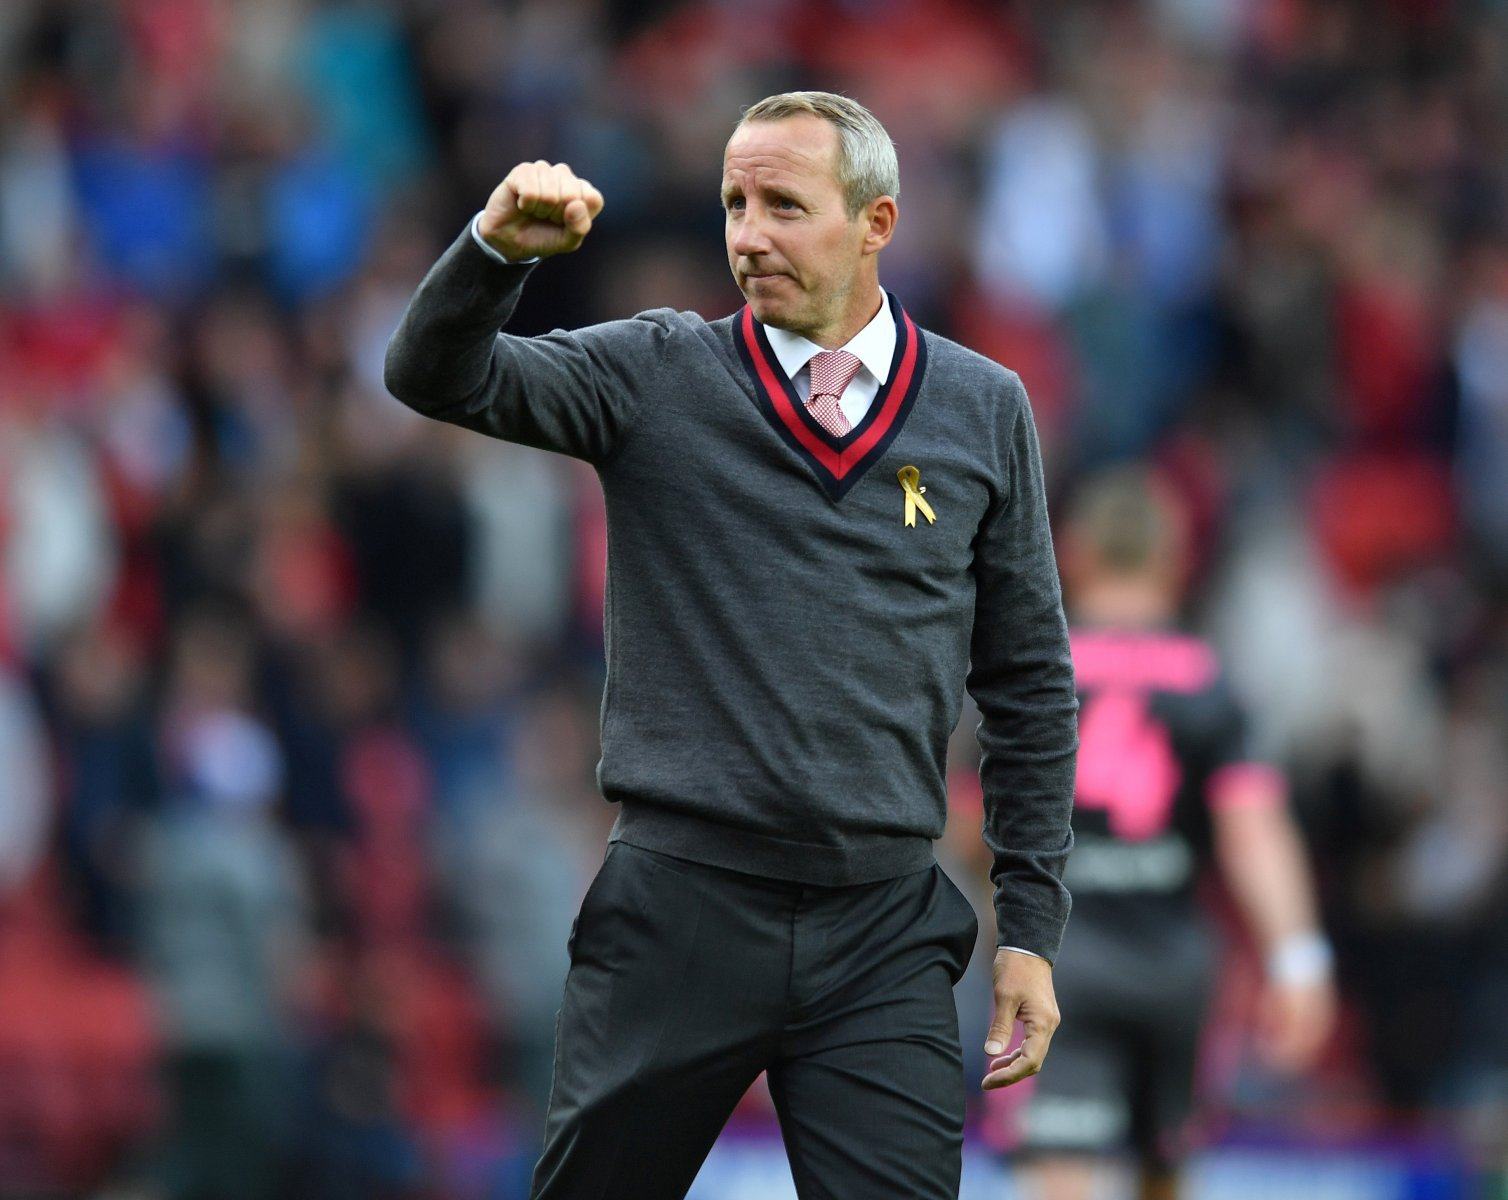 Leeds United: Fans tip Charlton Athletic's Lee Bowyer to succeed Marcelo Bielsa